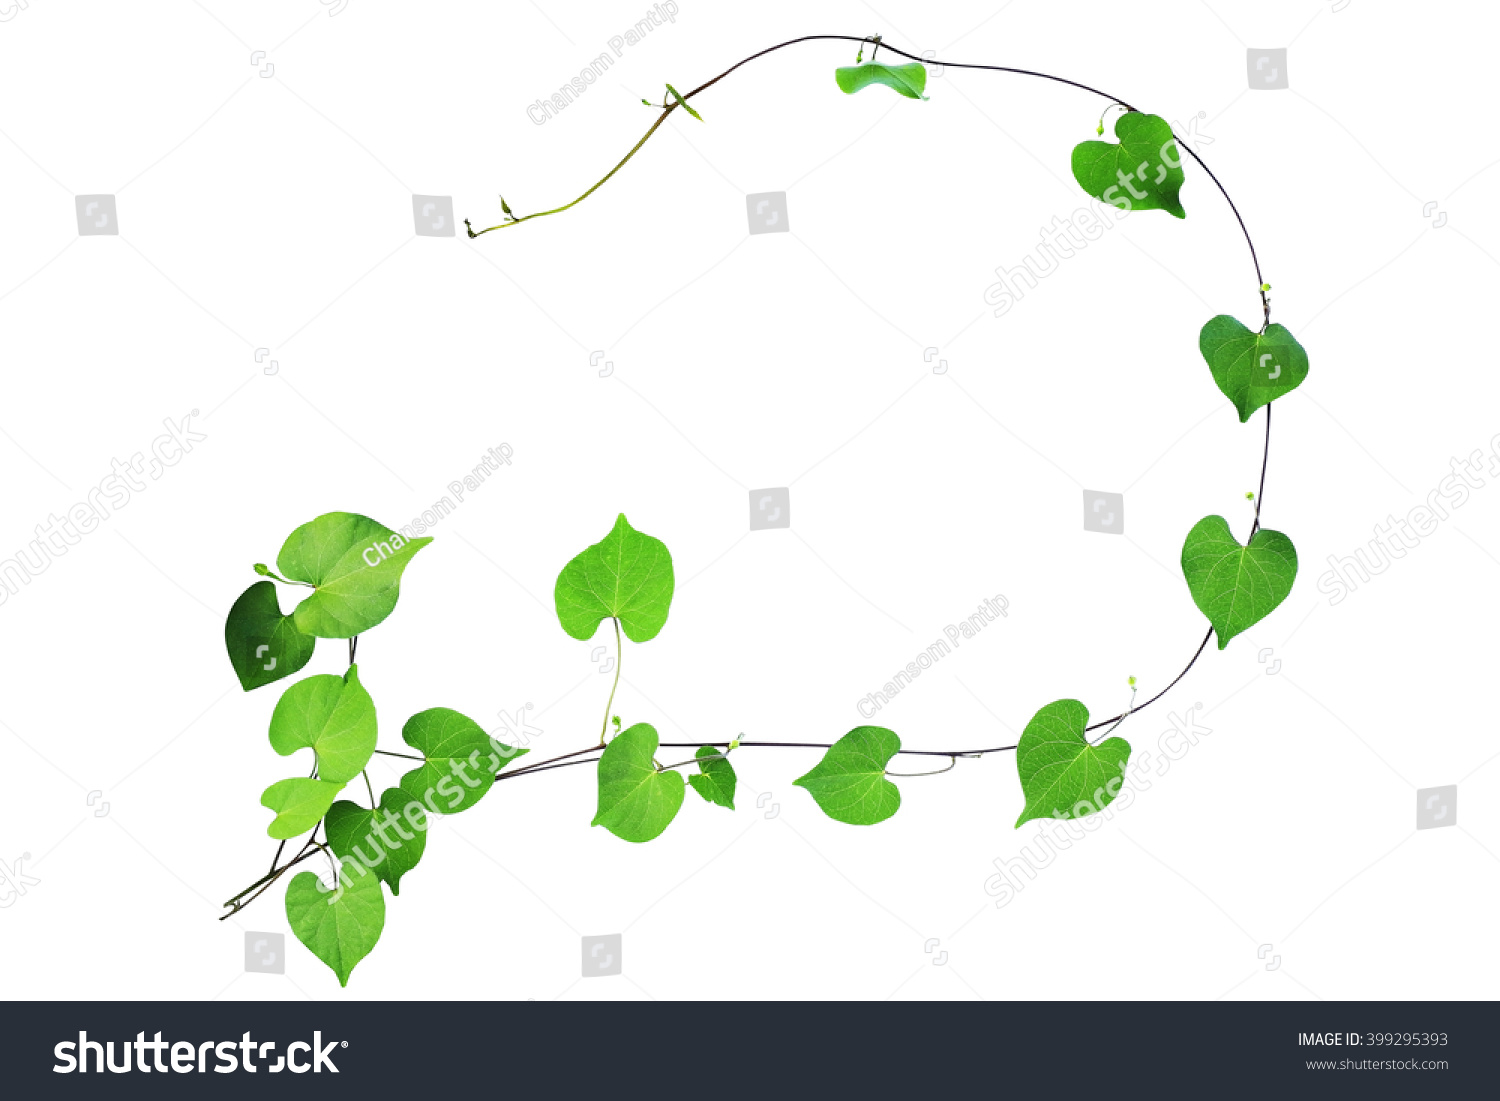 Natural Frame Green Heart Shaped Leaves Stock Photo 399295393 ...